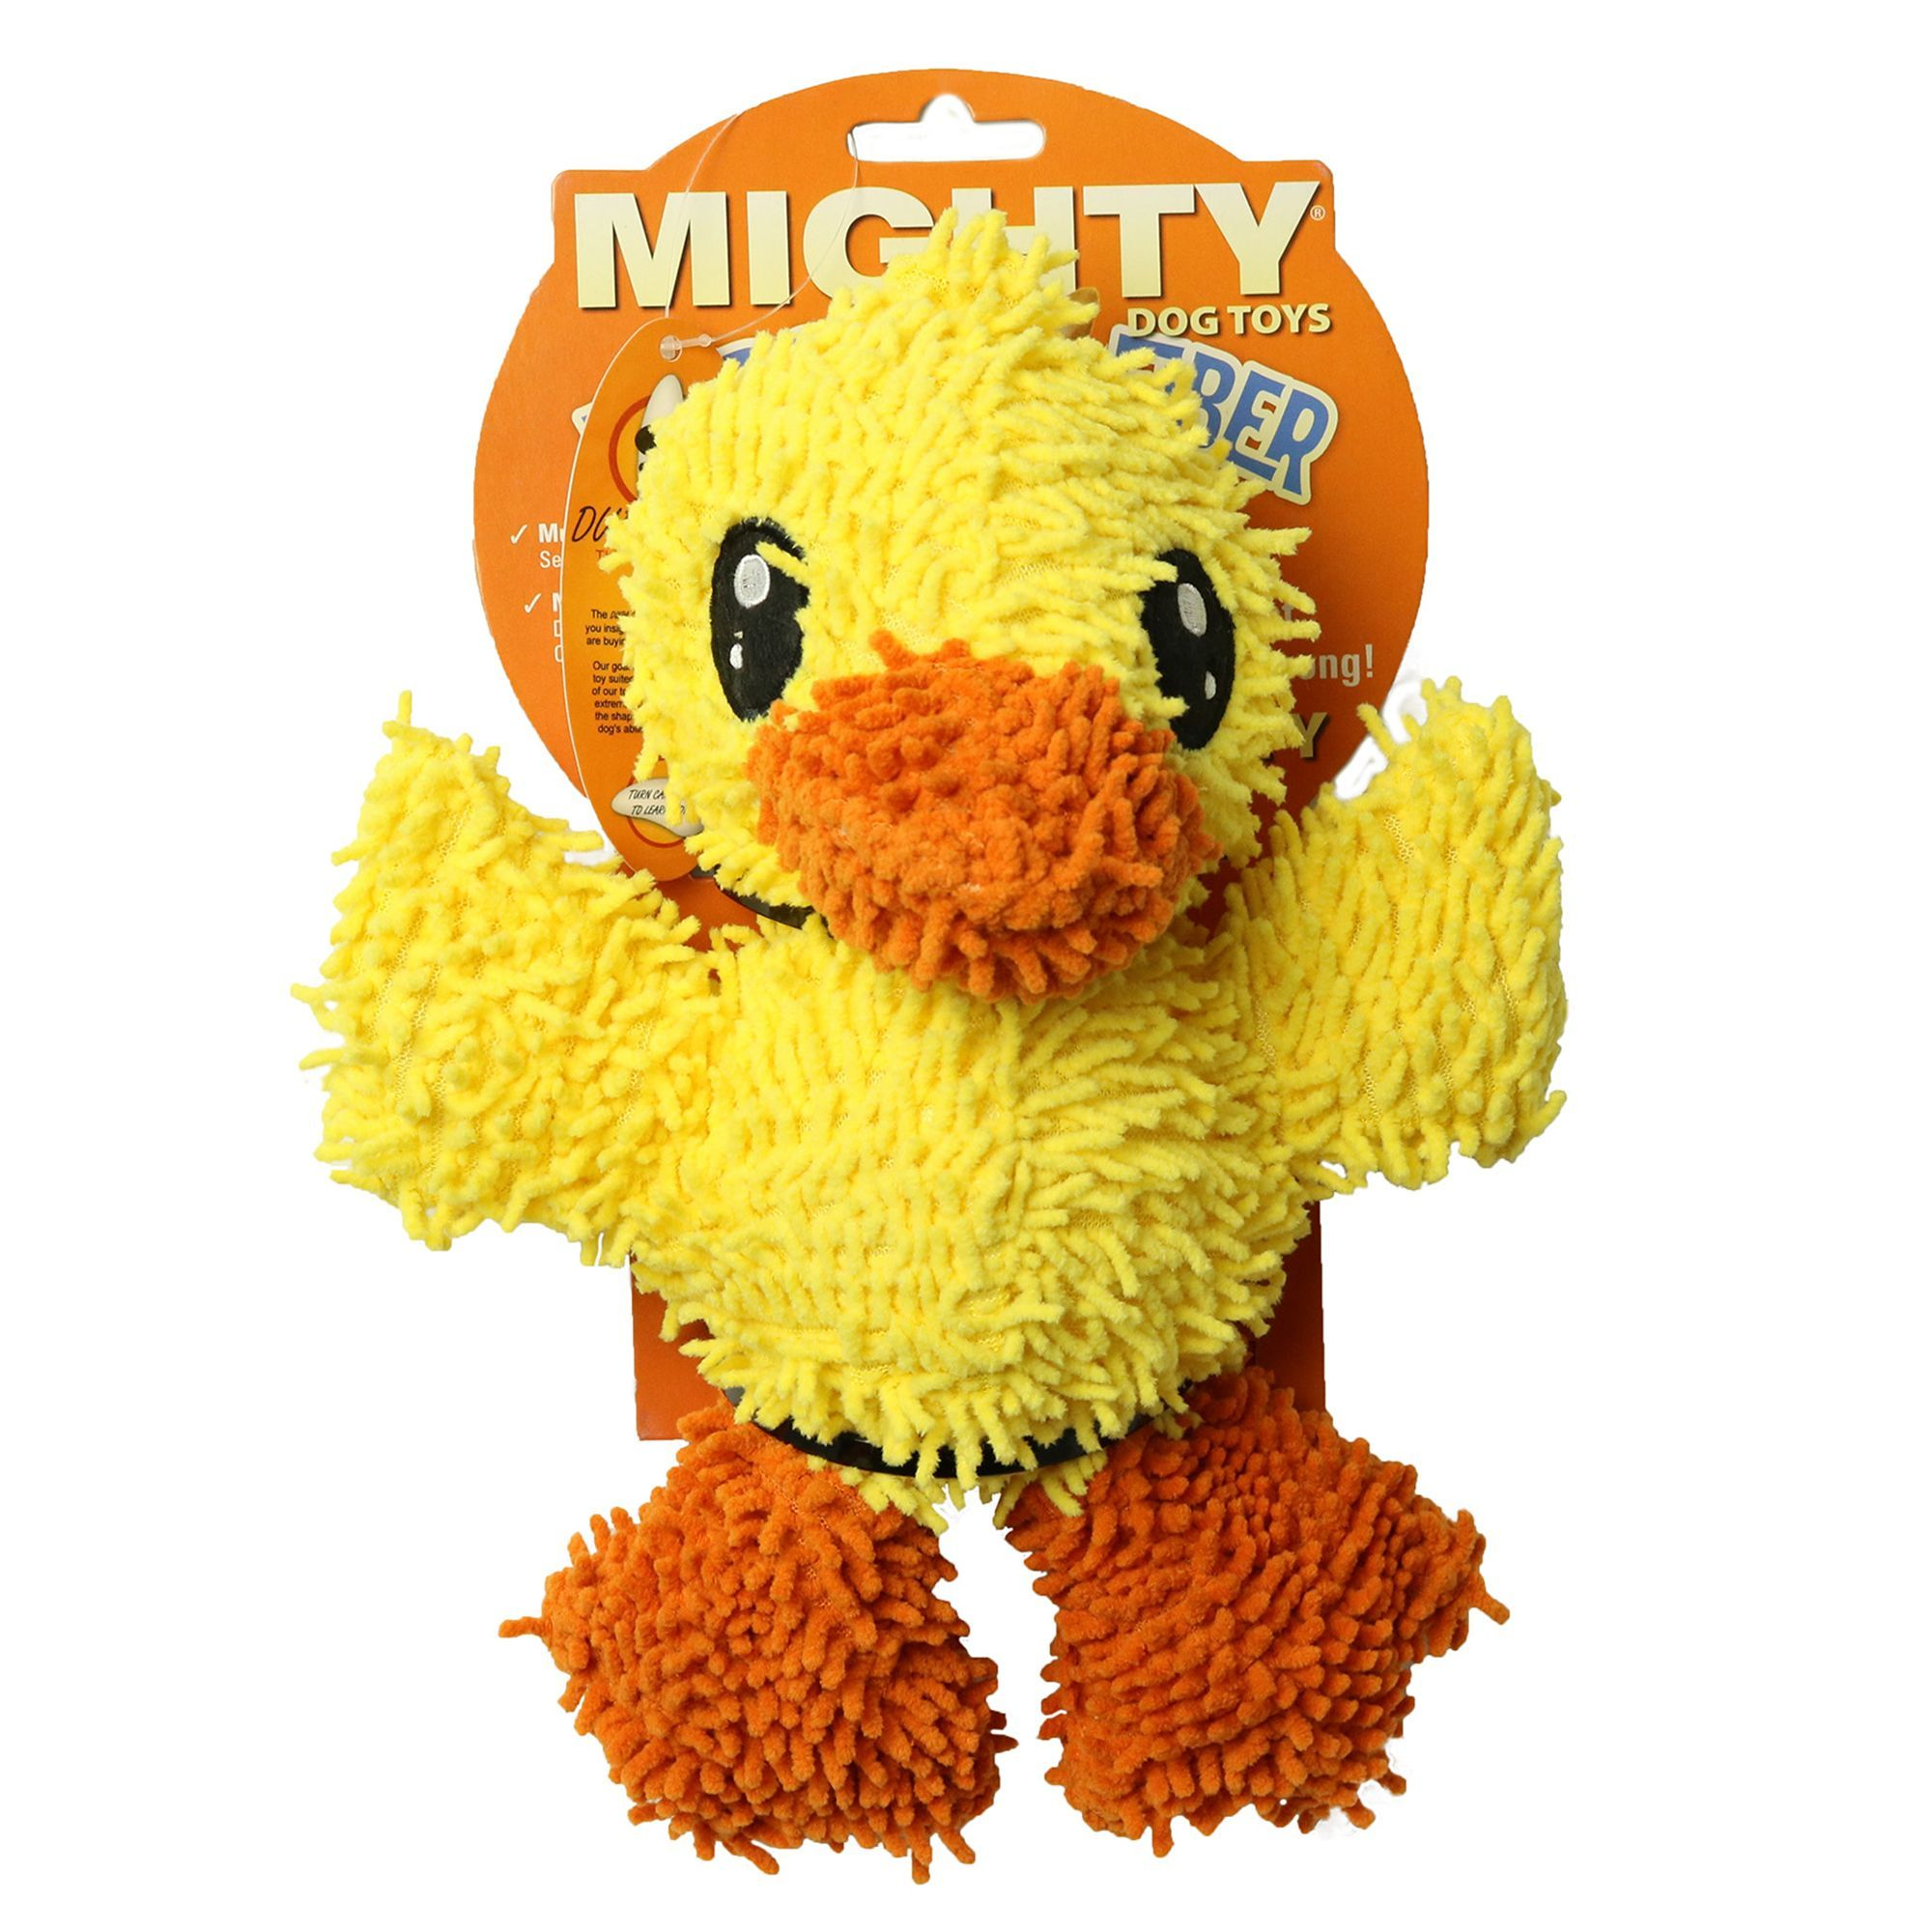 Mighty Dog Toys Microfiber Ball Duck Dog Toy Plush Squeaker